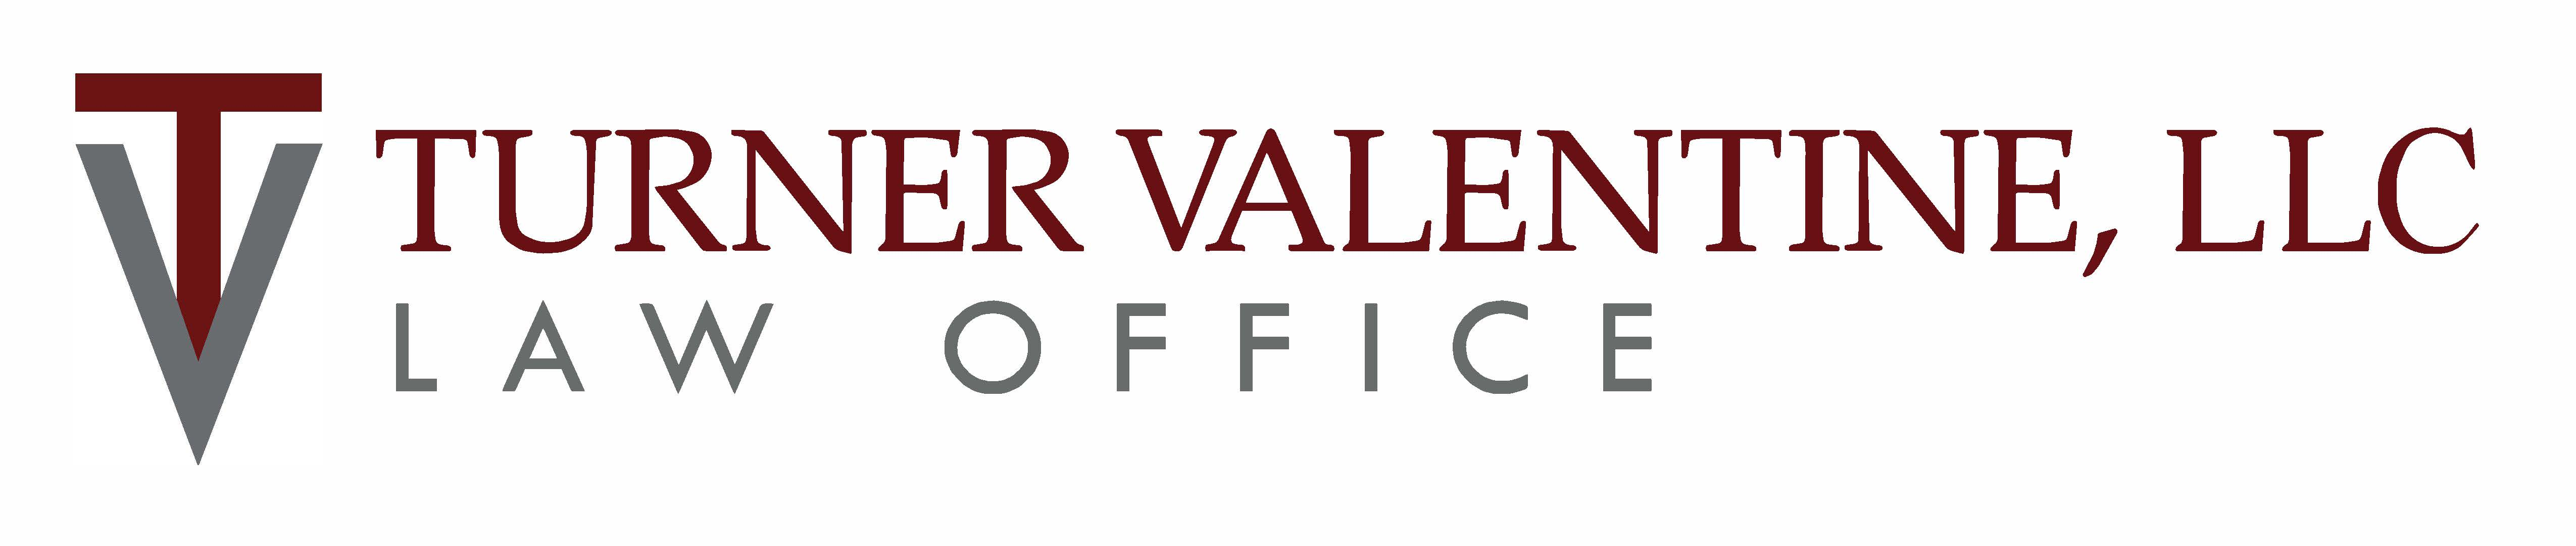 Turner Valentine, LLC Law Office